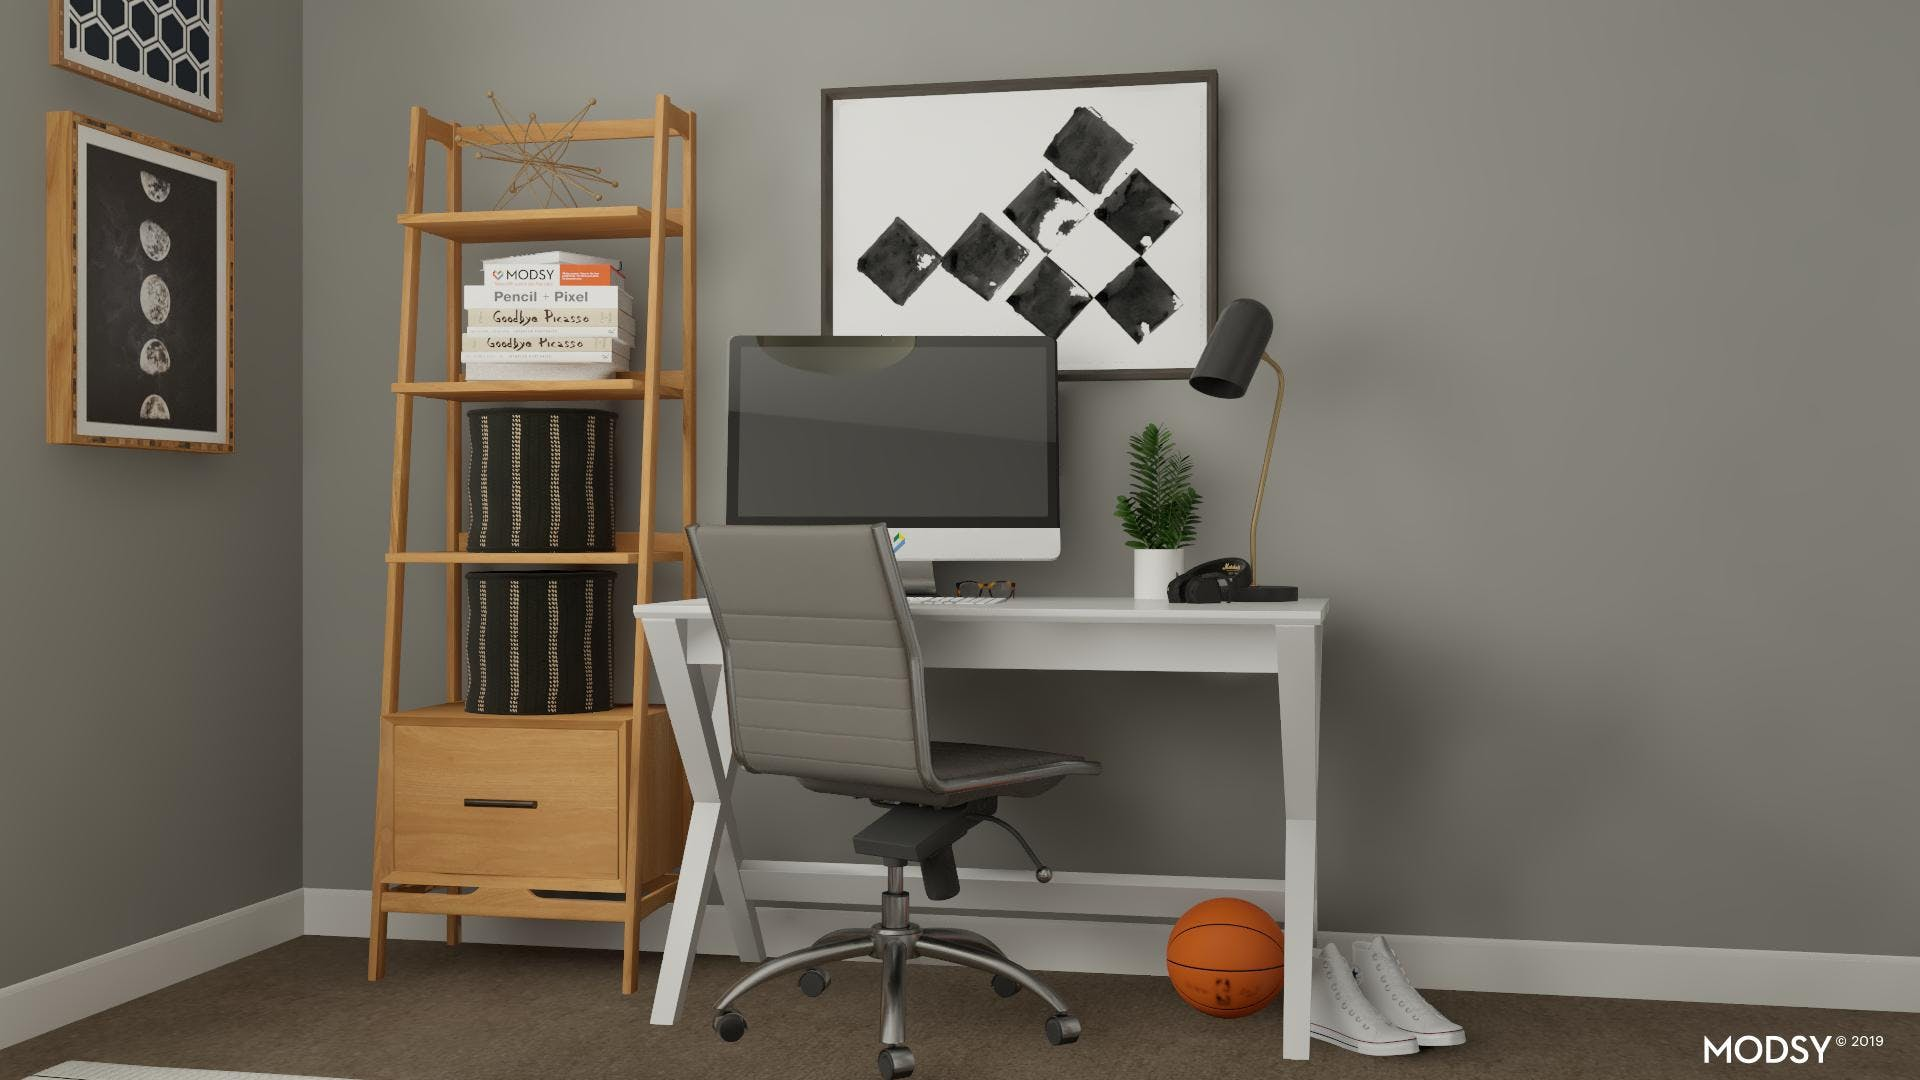 Hot Spot for Homework with a minimalist touch.